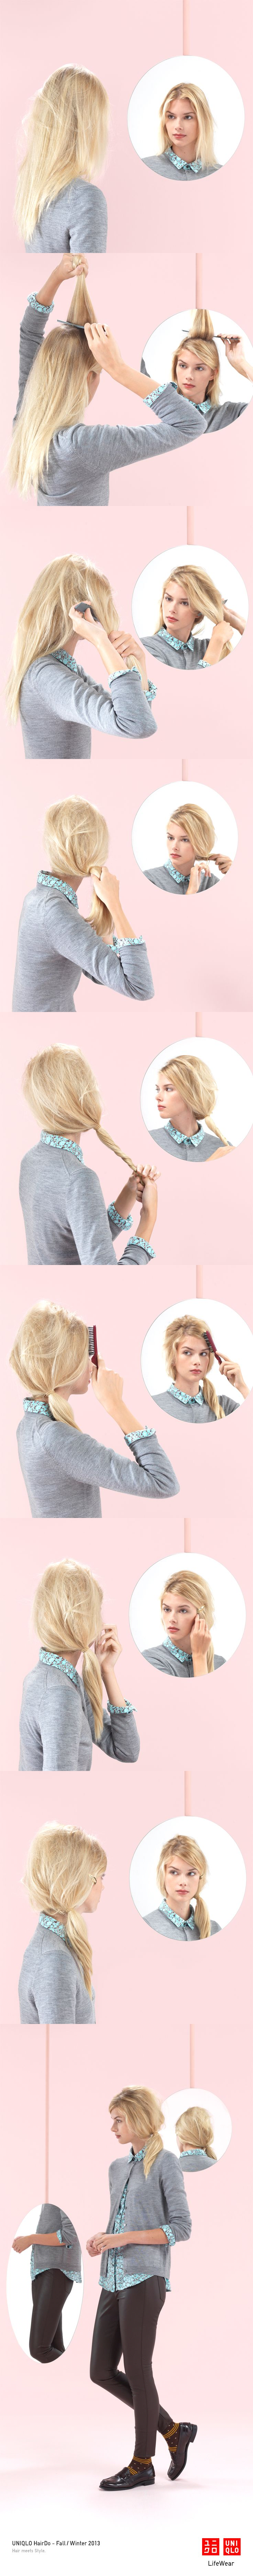 """""""THE BEE HIVE WITH TWIST"""" : A cardigan, patterned blouse, and loose ponytail make this a great look for a day at the office. Click the image for DIY instructions! #Ponytail #Hair #DIY #Hairstyle #UNIQLO"""